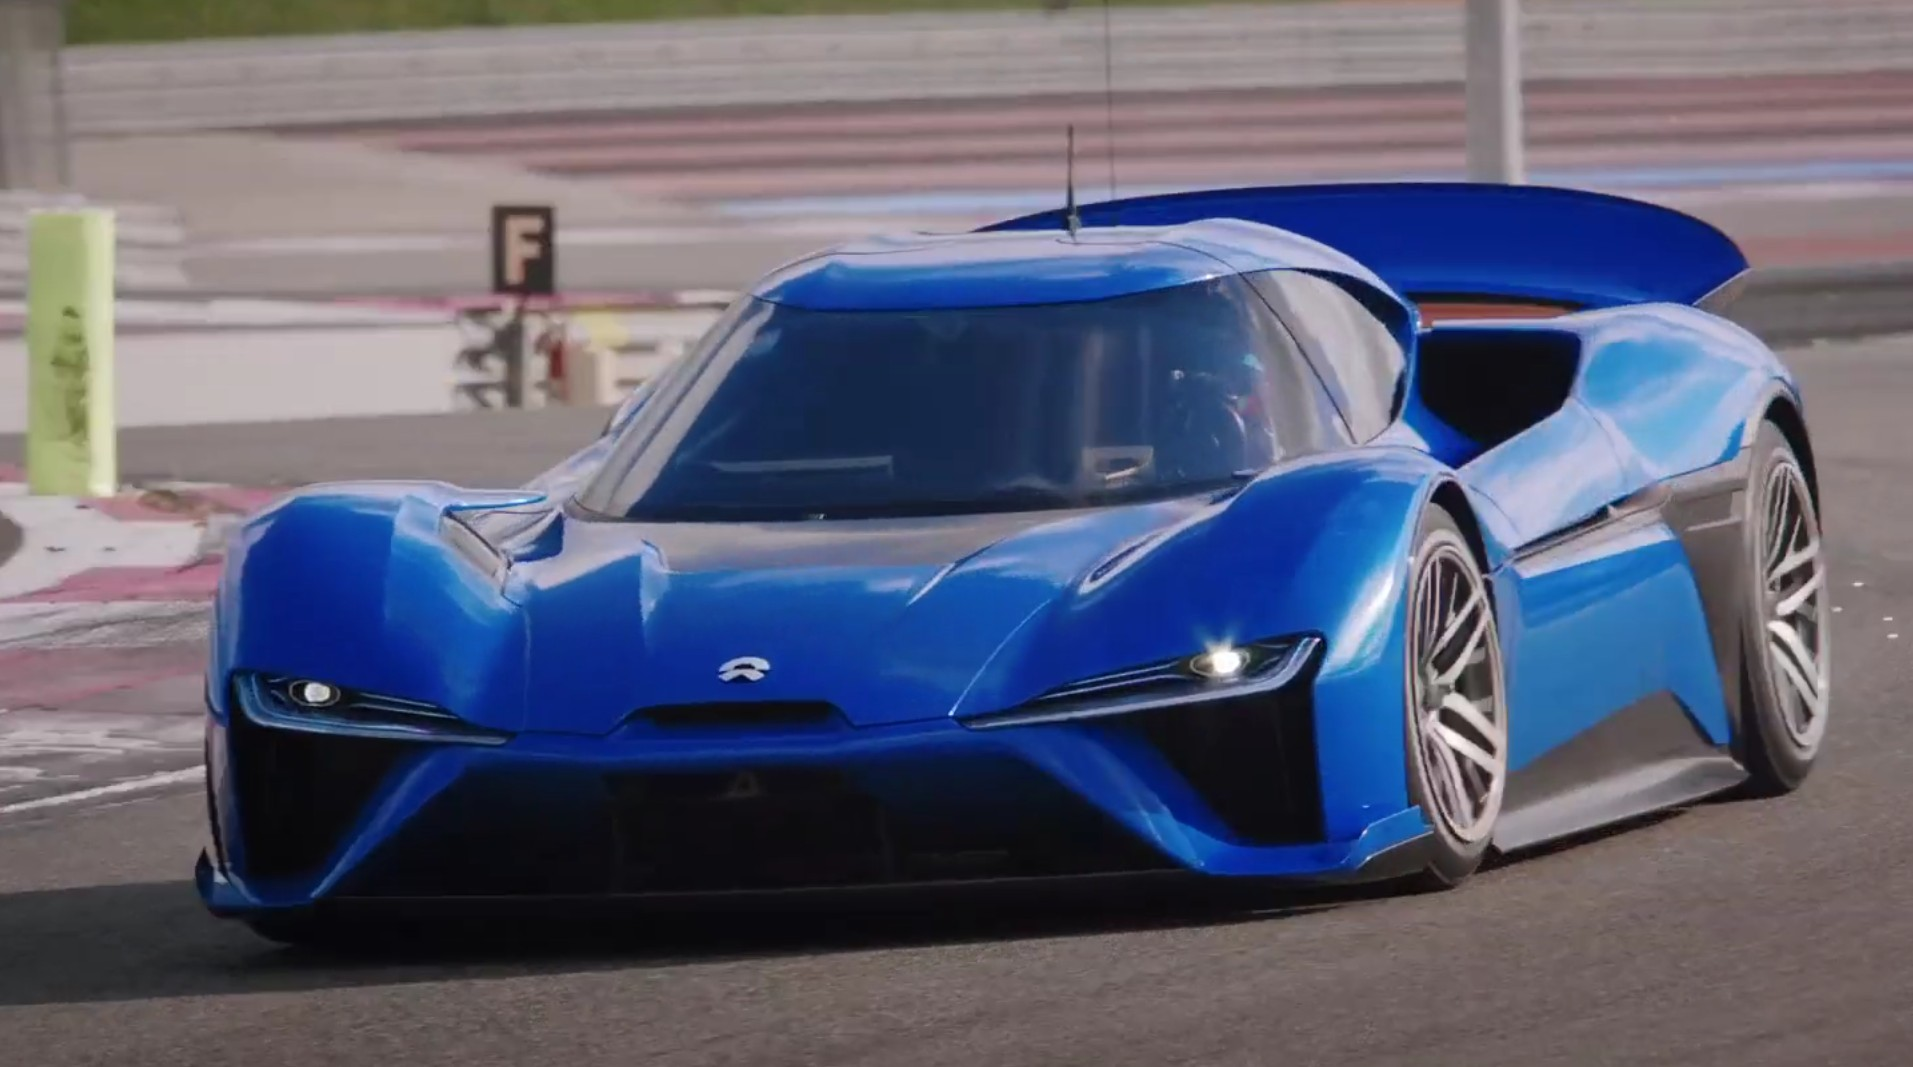 Nio To Sell 10 More EP9 Supercars Priced From 148M Each